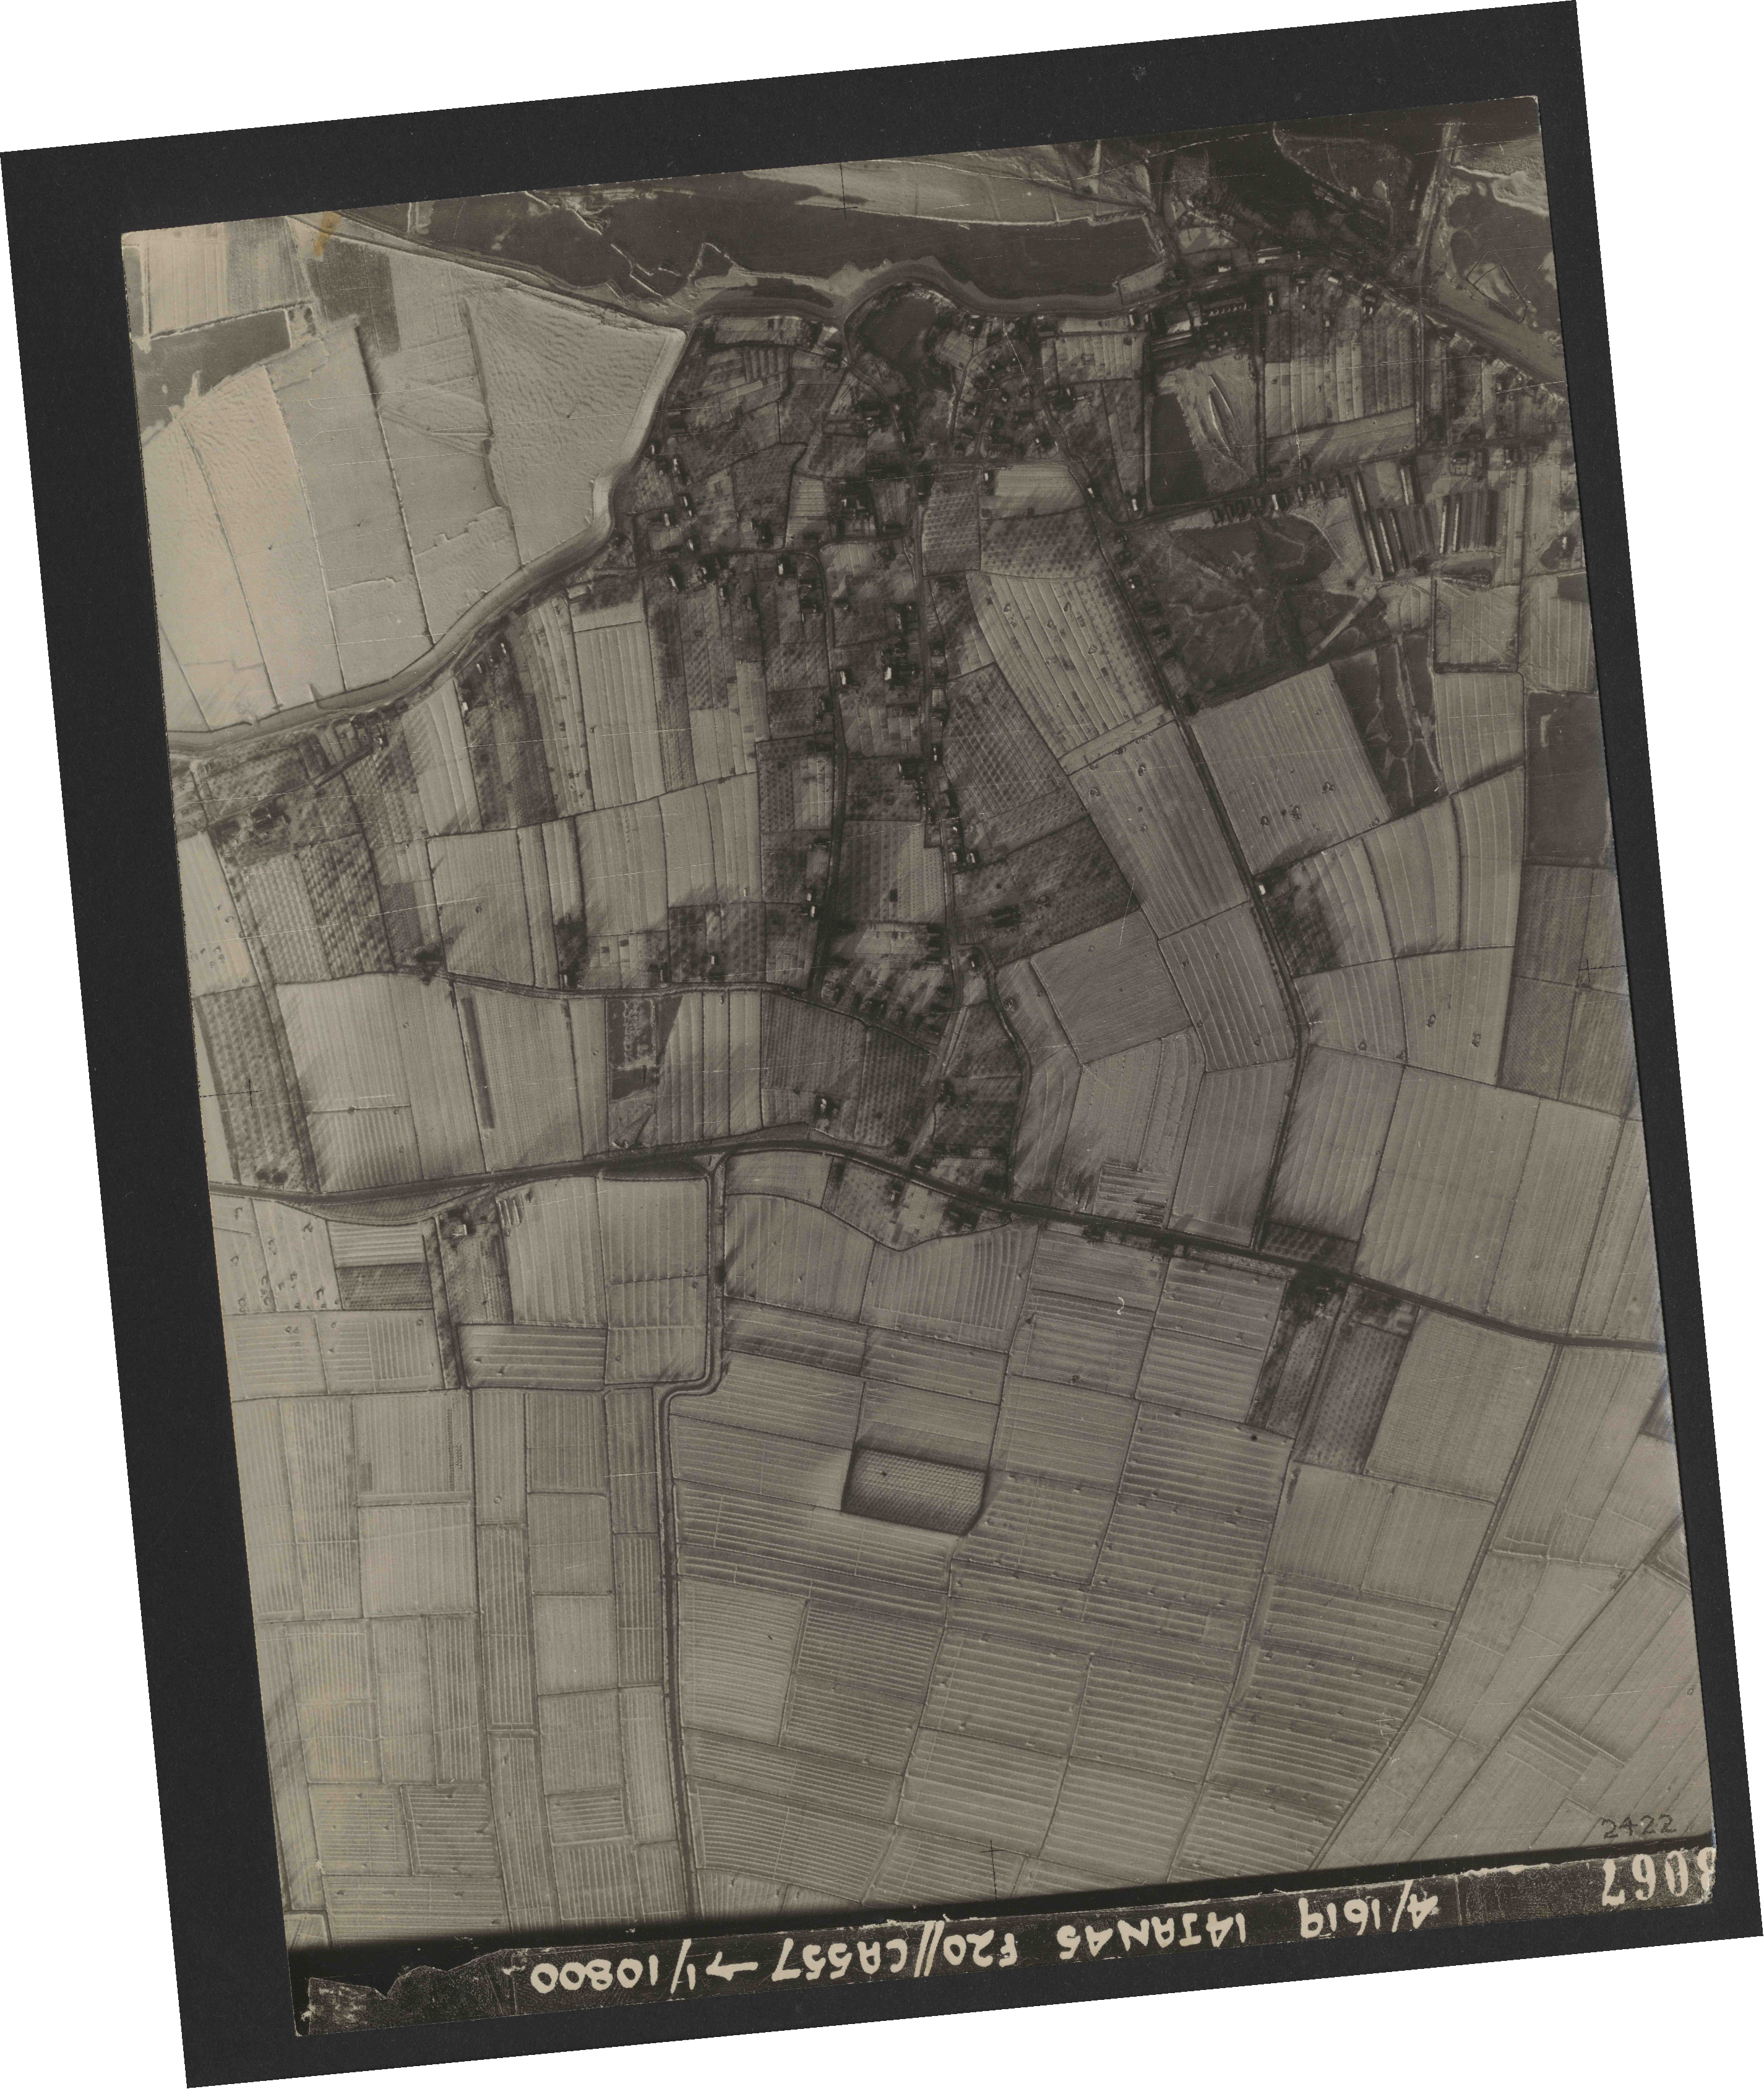 Collection RAF aerial photos 1940-1945 - flight 291, run 04, photo 3067